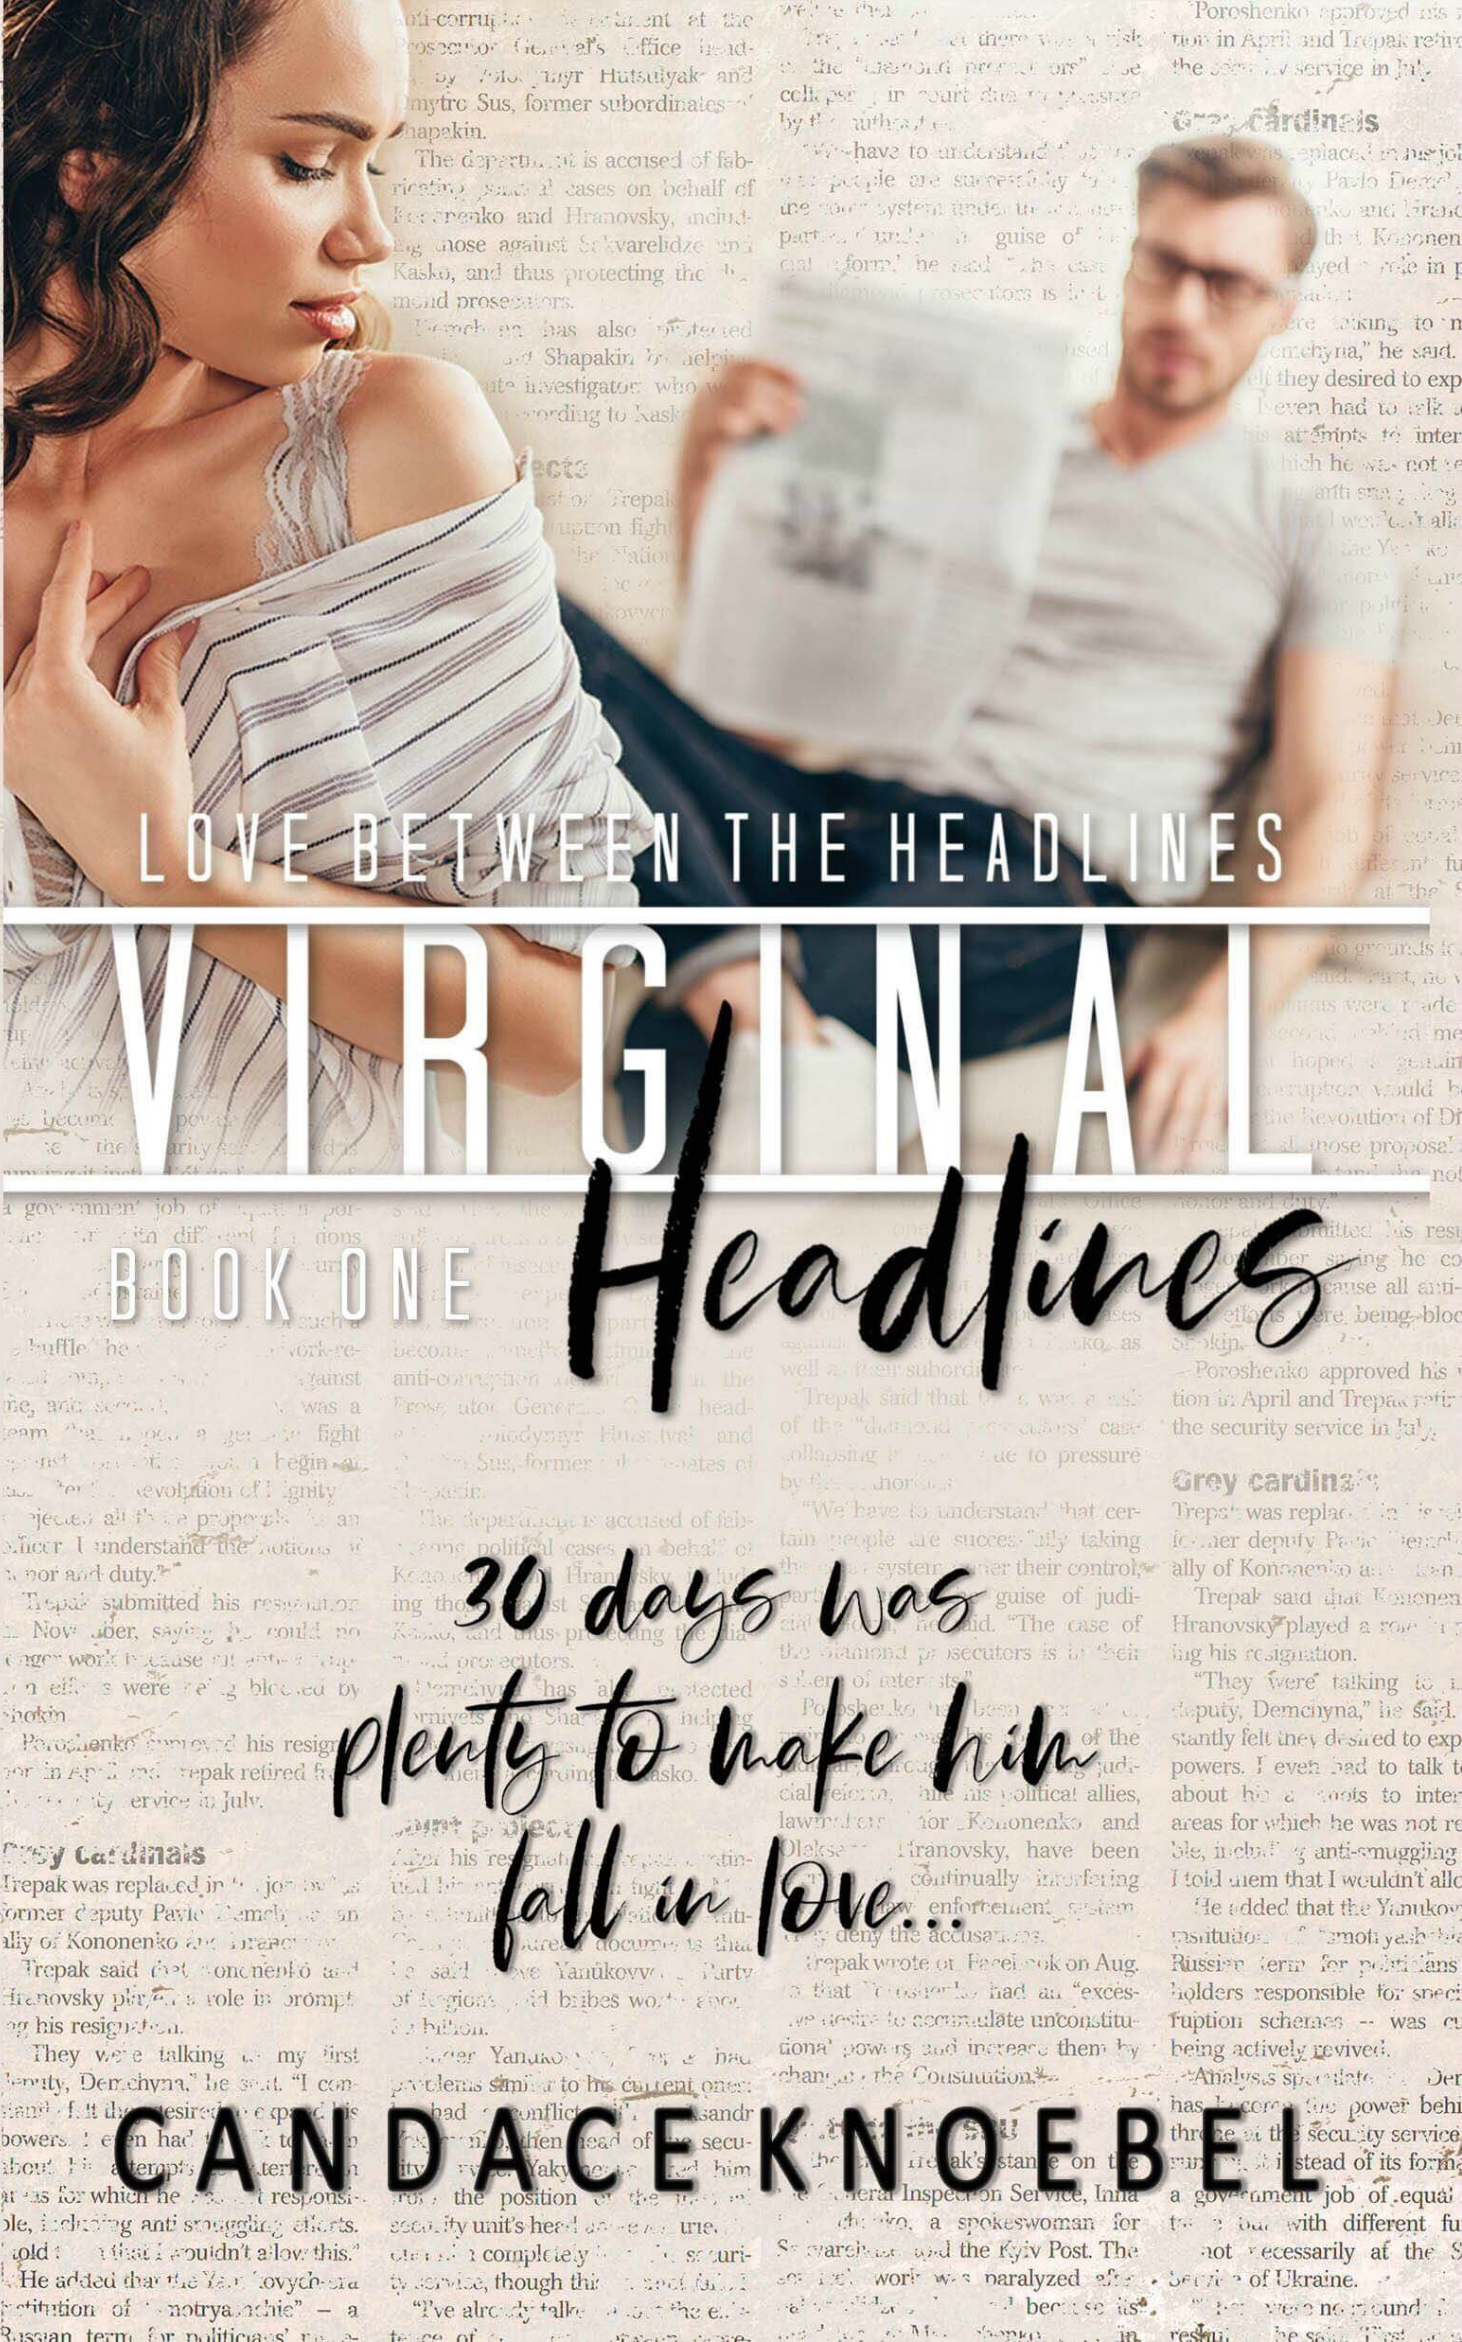 Virginal Headlines Cover.jpg